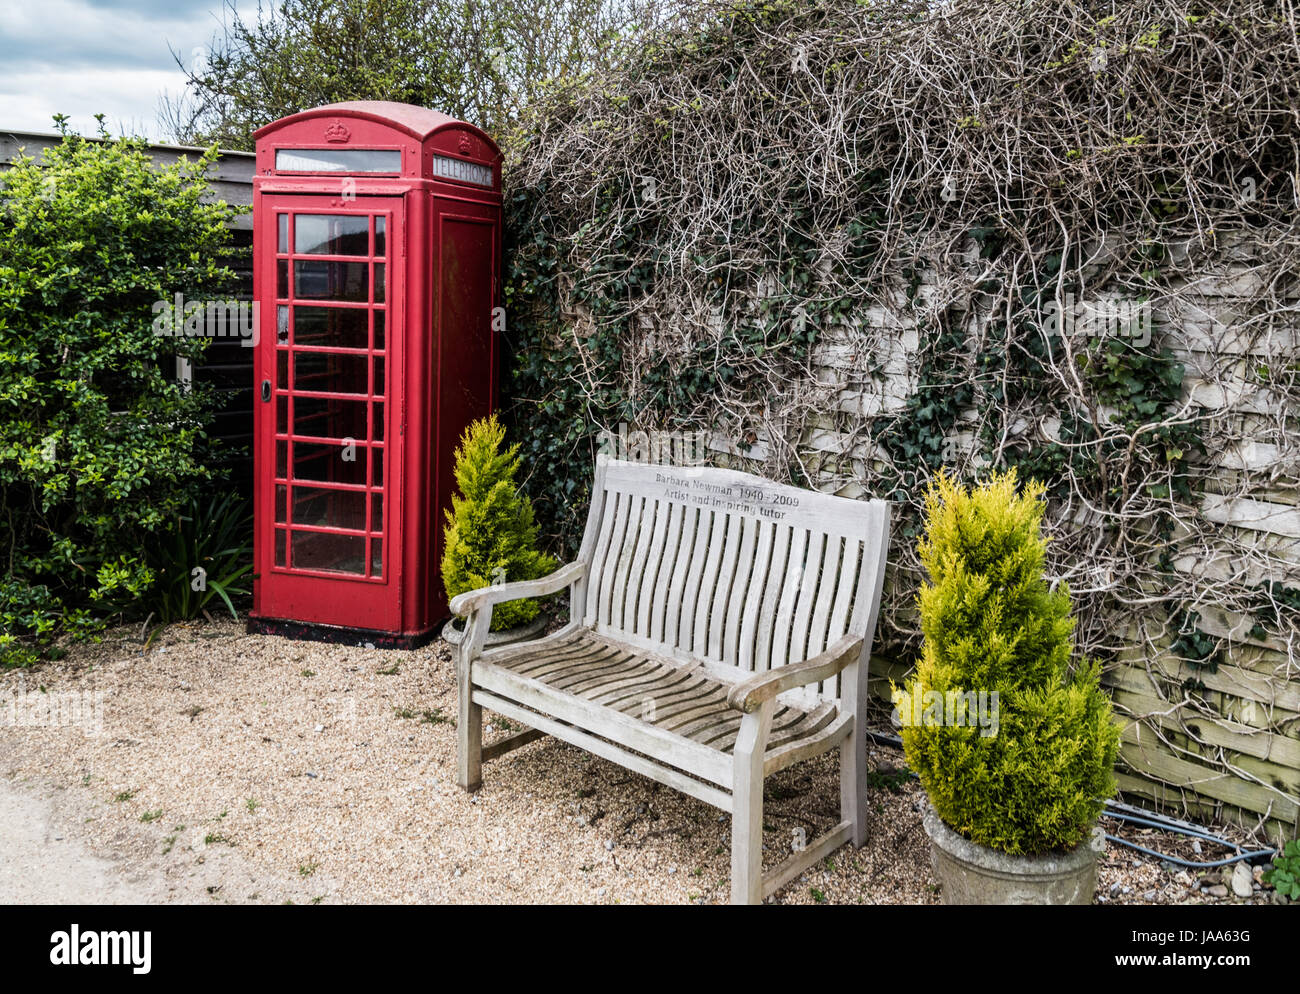 Red phone box and bench seat at Castlehaven - Stock Image